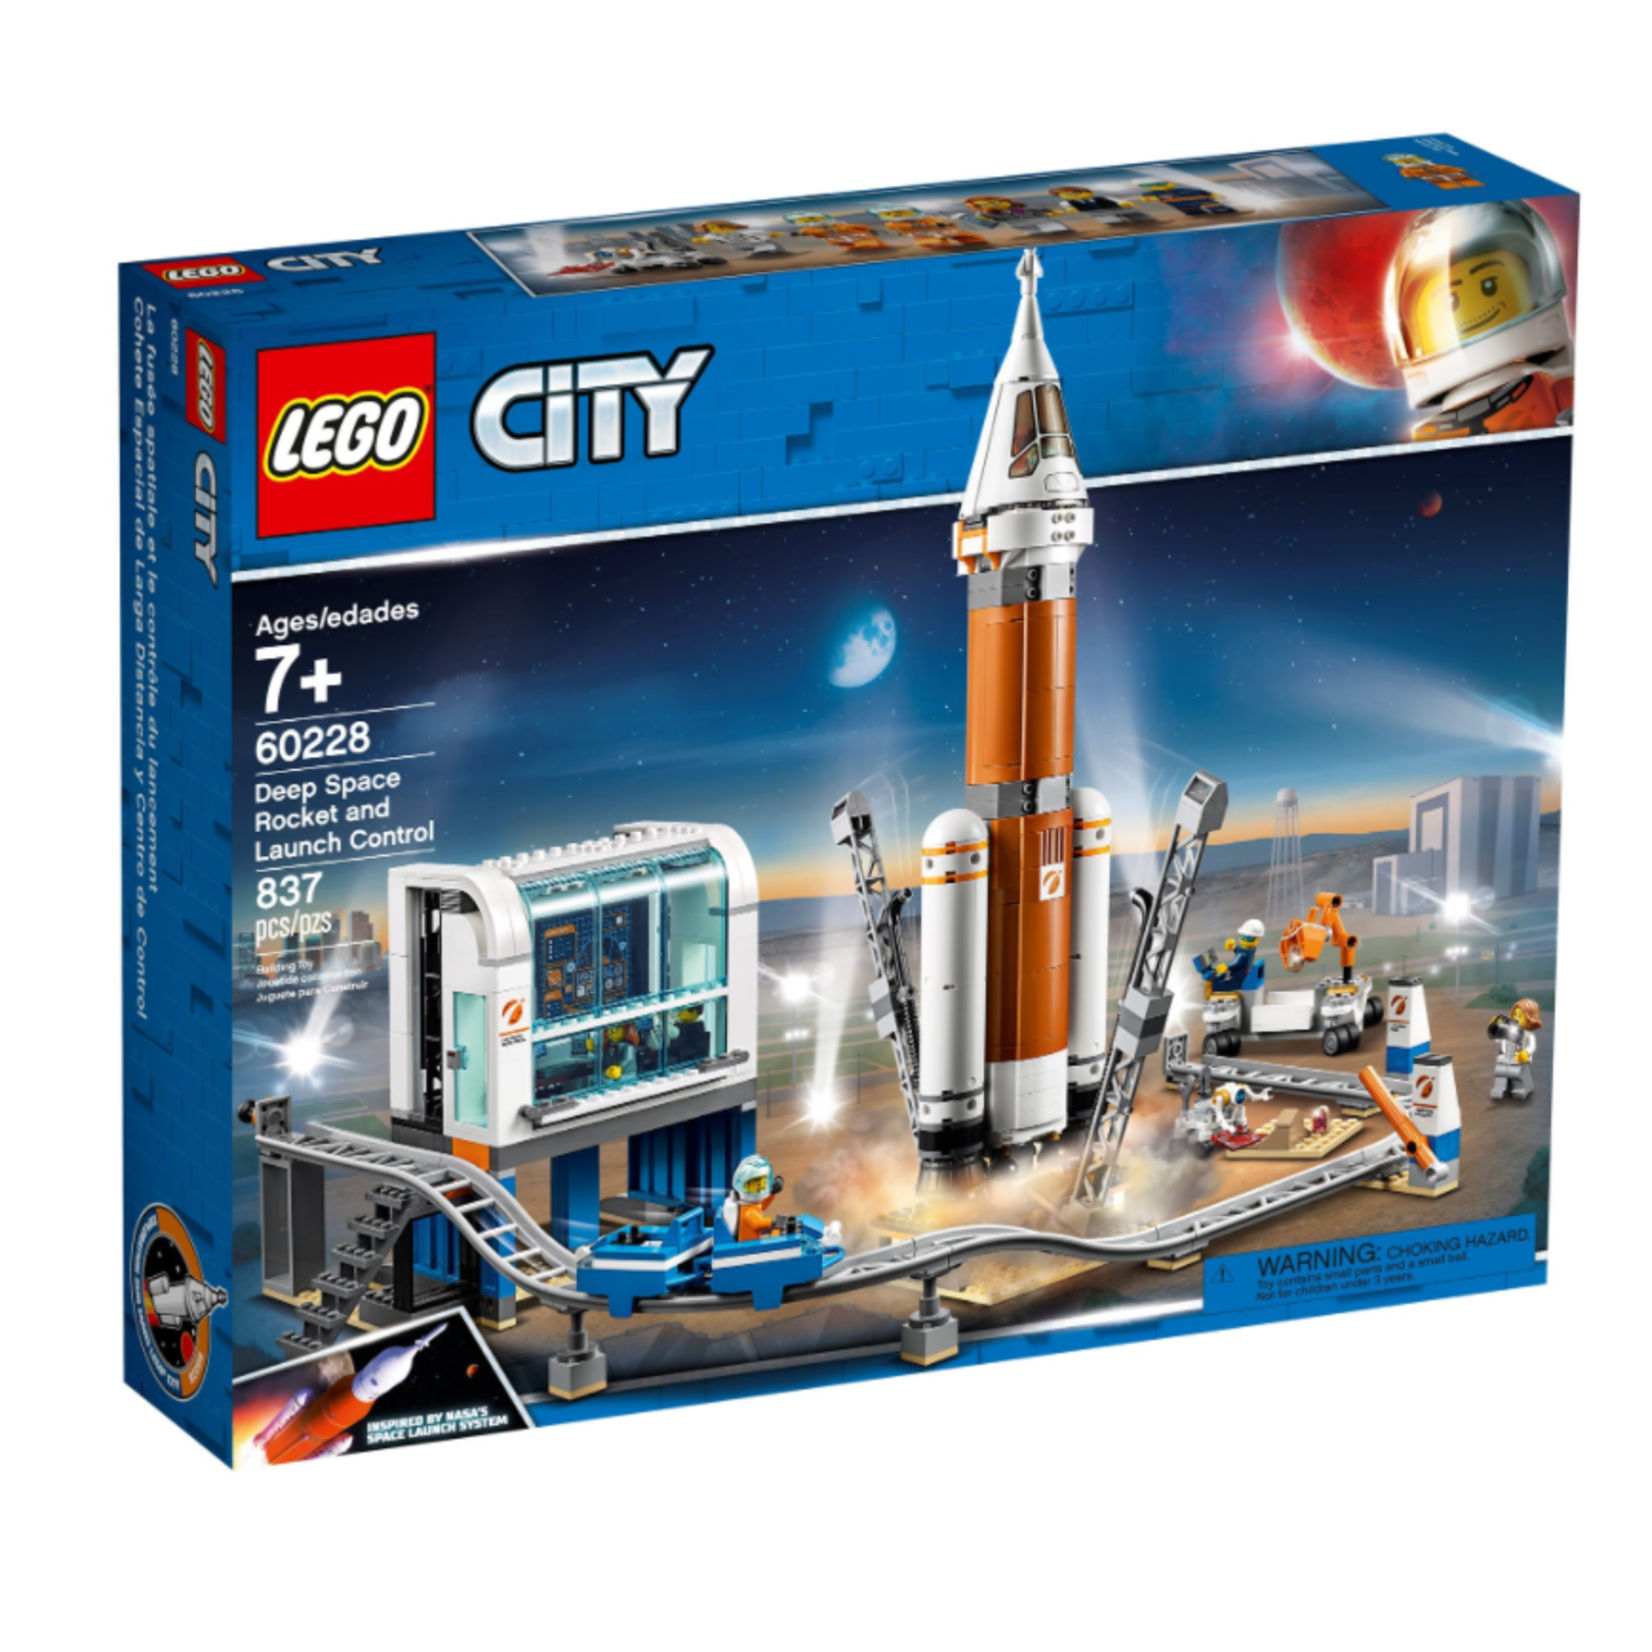 LEGO Lego City Deep Space Rocket and Launch Control